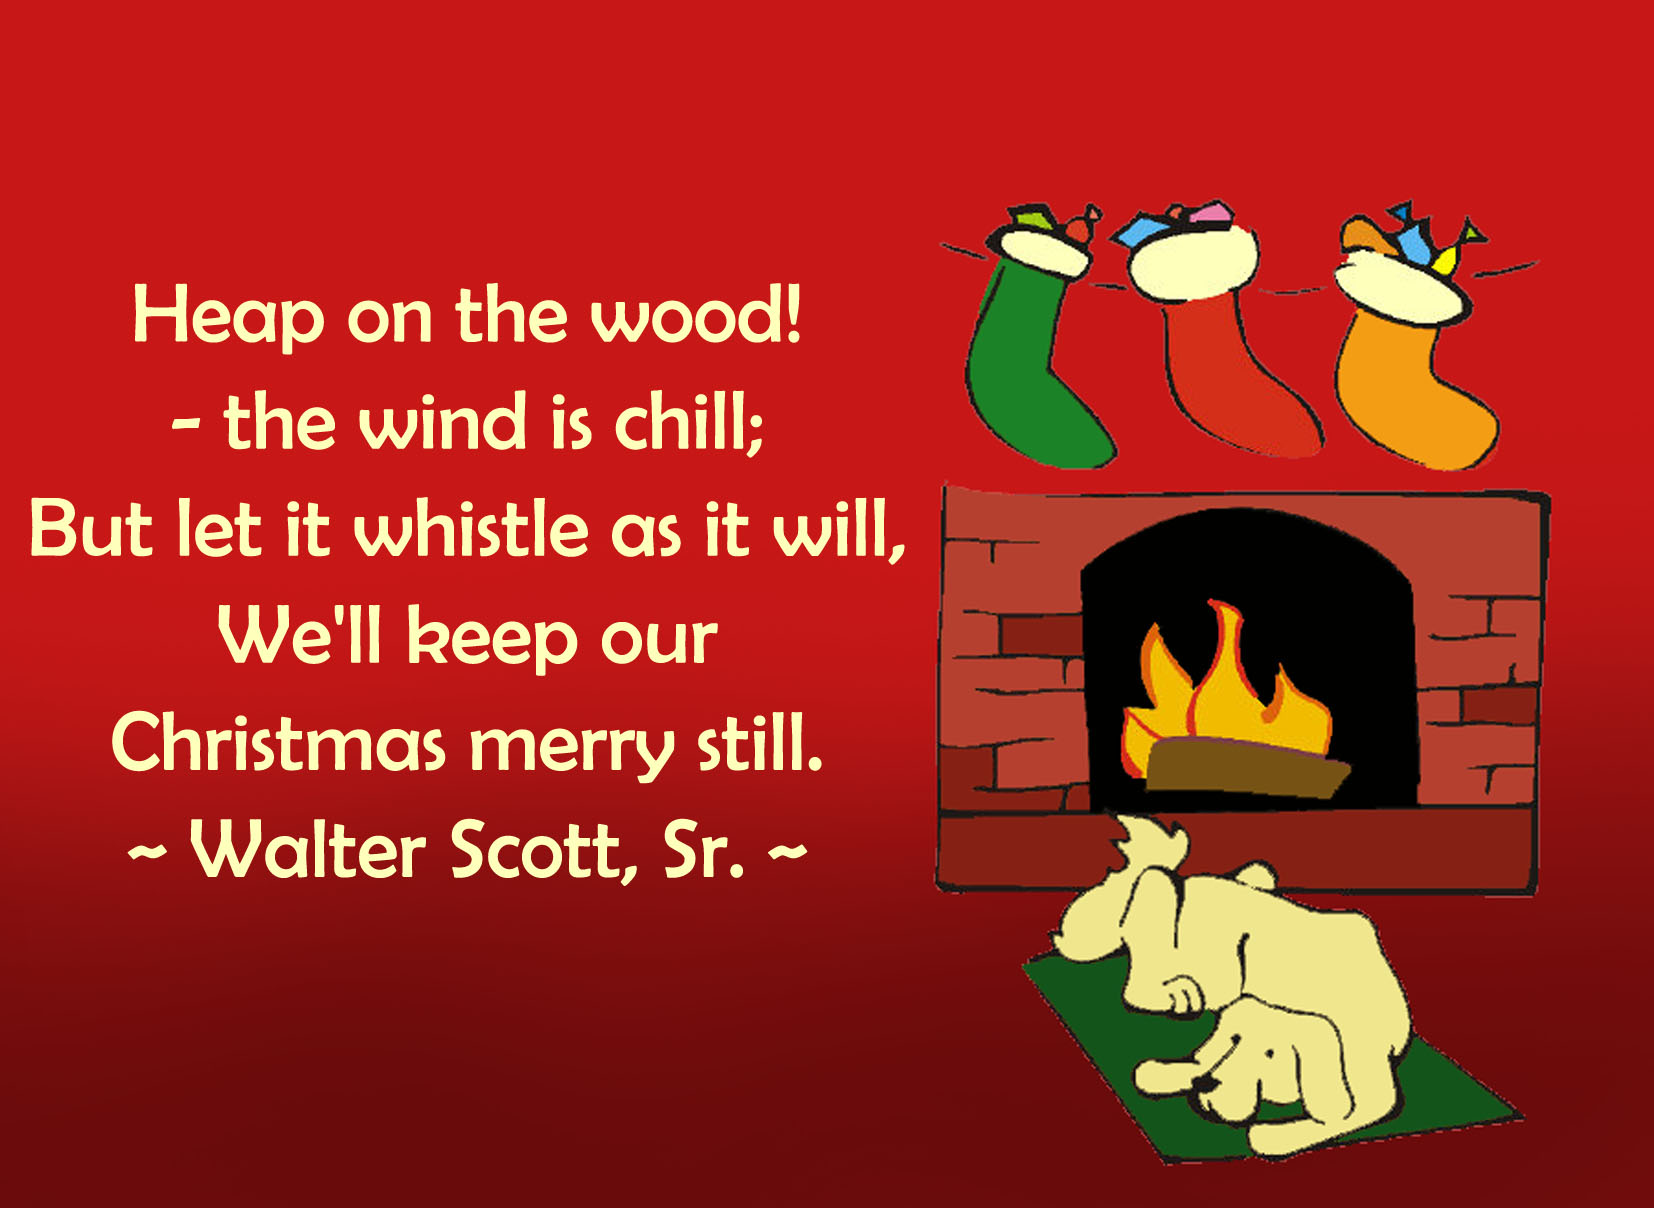 chrismas card with dog in front of fireplace and a quote by walter scott sr